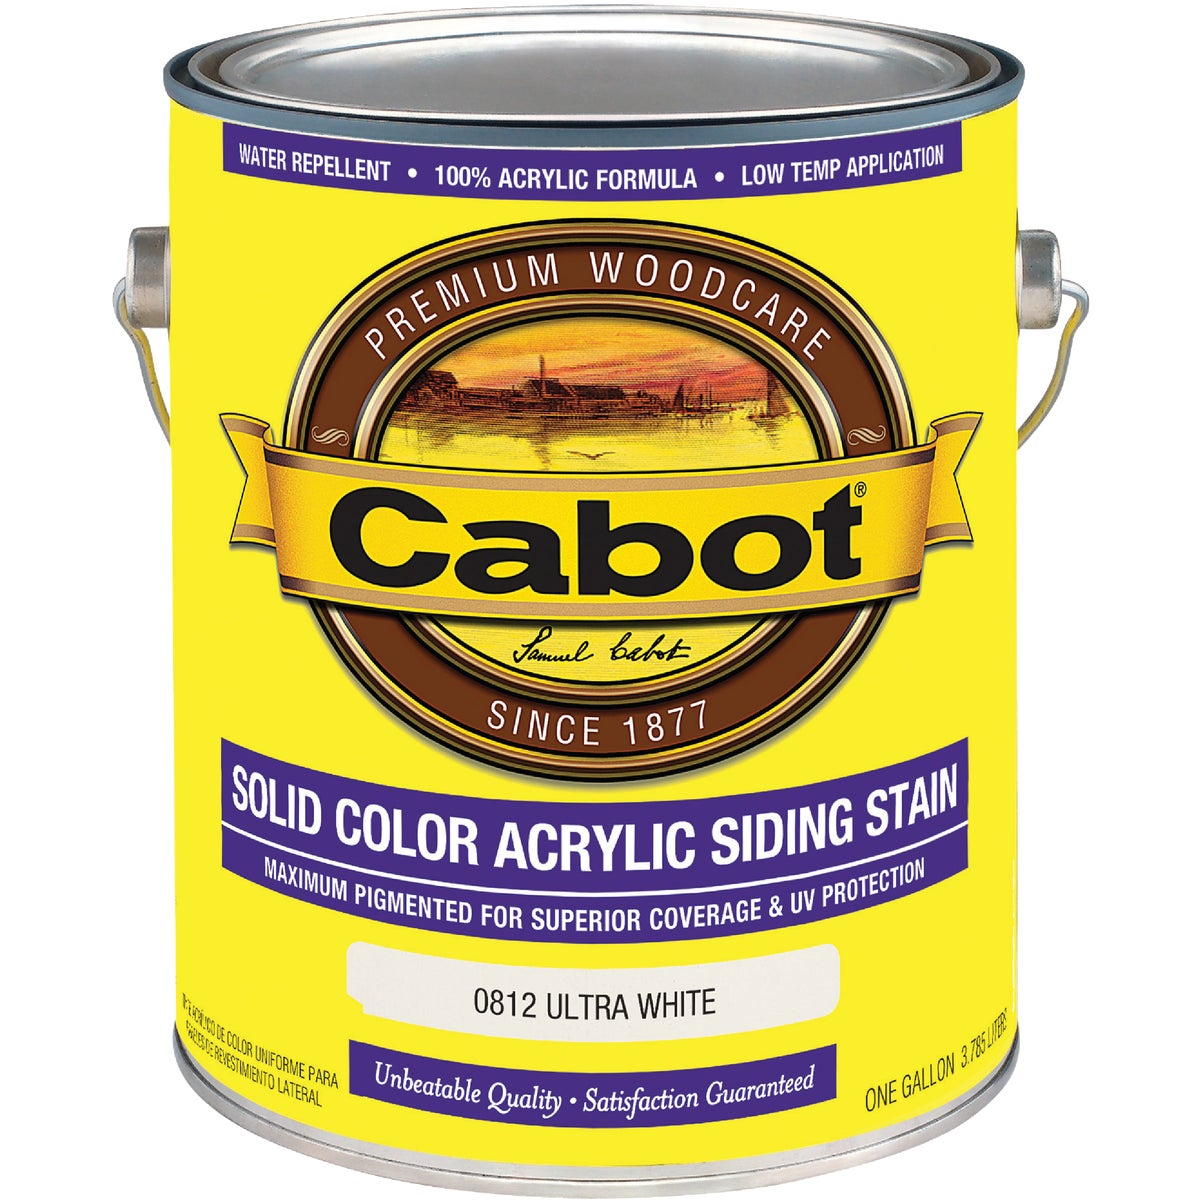 ULT WHT PRO SOLID STAIN - 140.0000812.007 by Valspar Corp